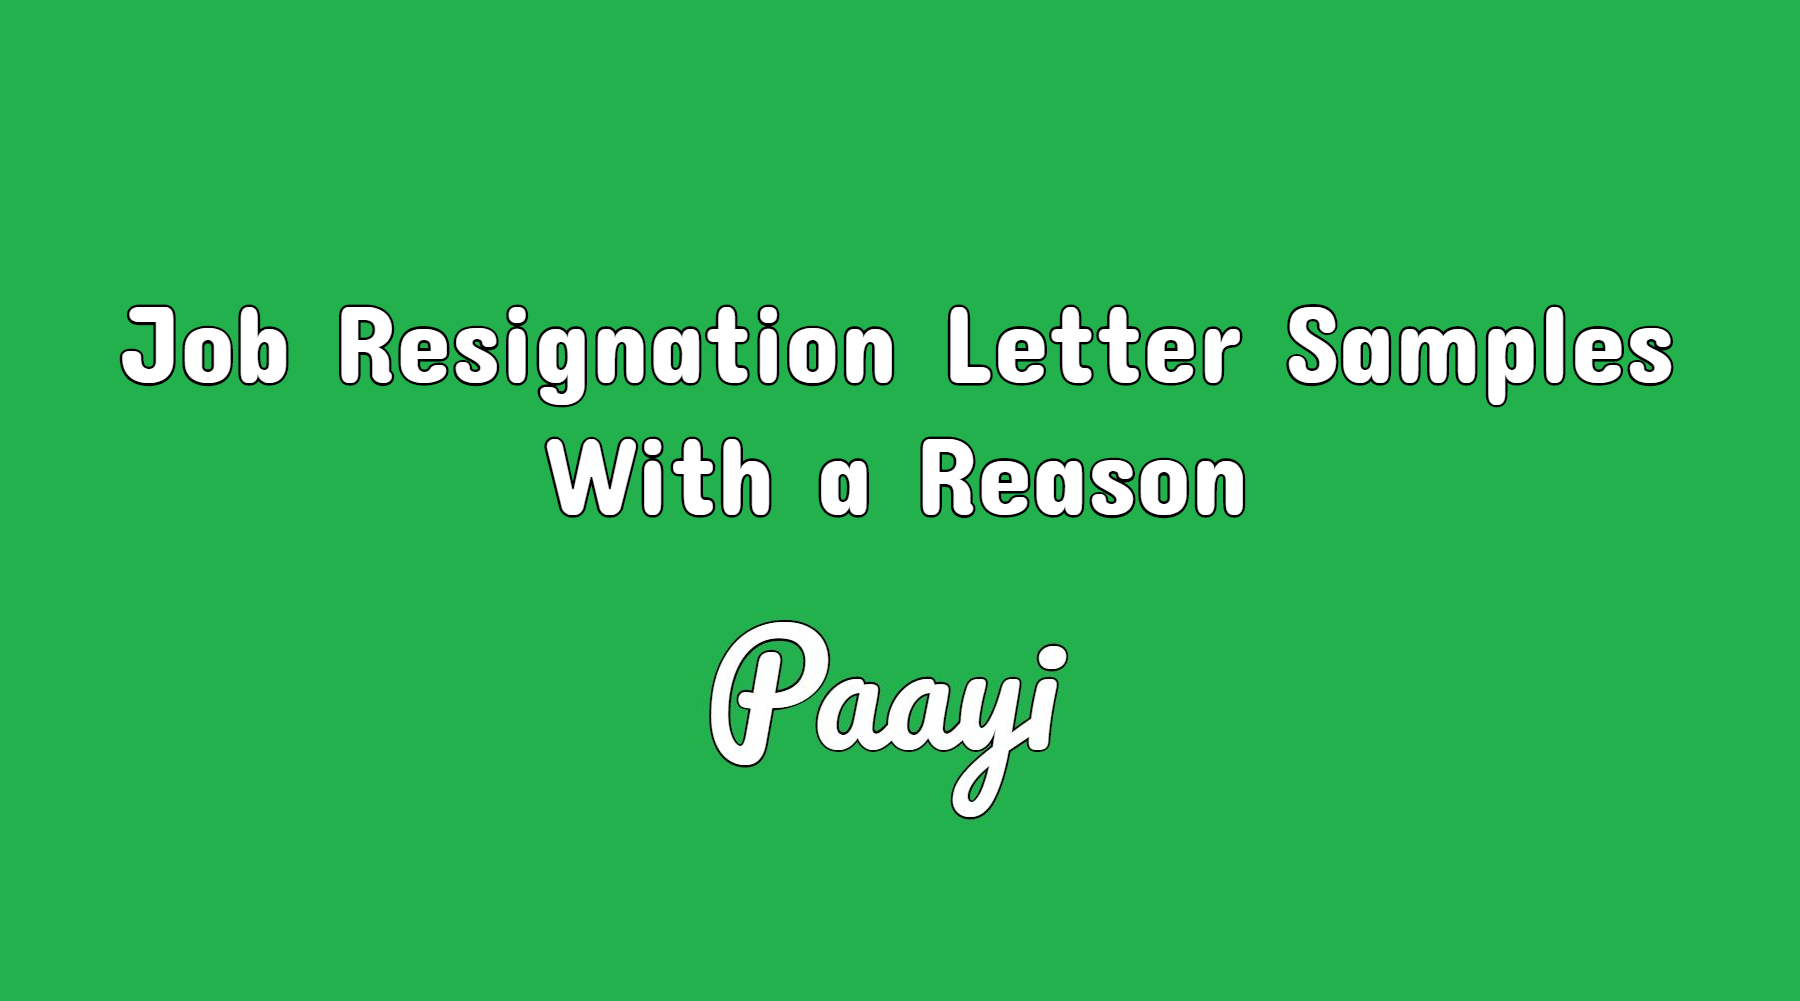 job resignation letter samples with a reason